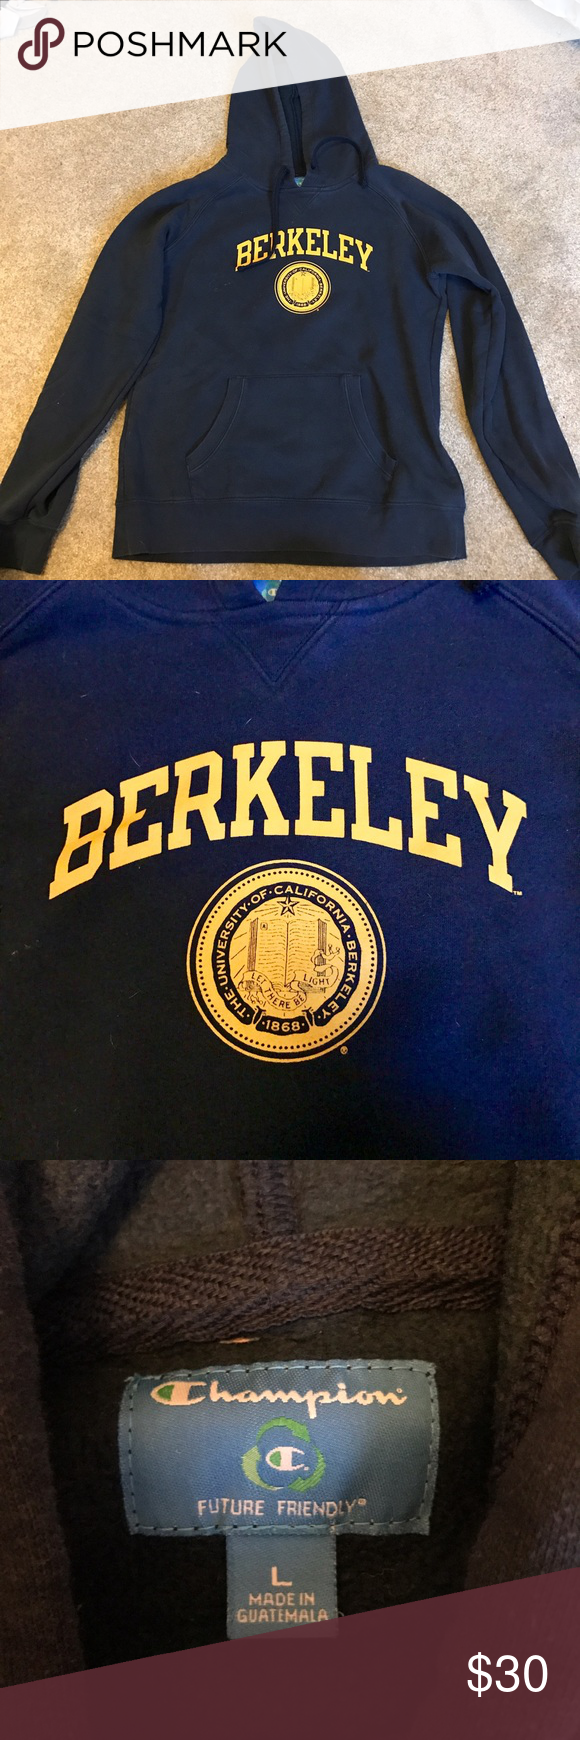 Uc Berkeley Sweatshirt Uc Berkeley Sweatshirt Bought From The Student Store I Ve Worn It About 10 Times But It S Sweatshirt Buy Champion Tops Sweatshirt Tops [ 1740 x 580 Pixel ]